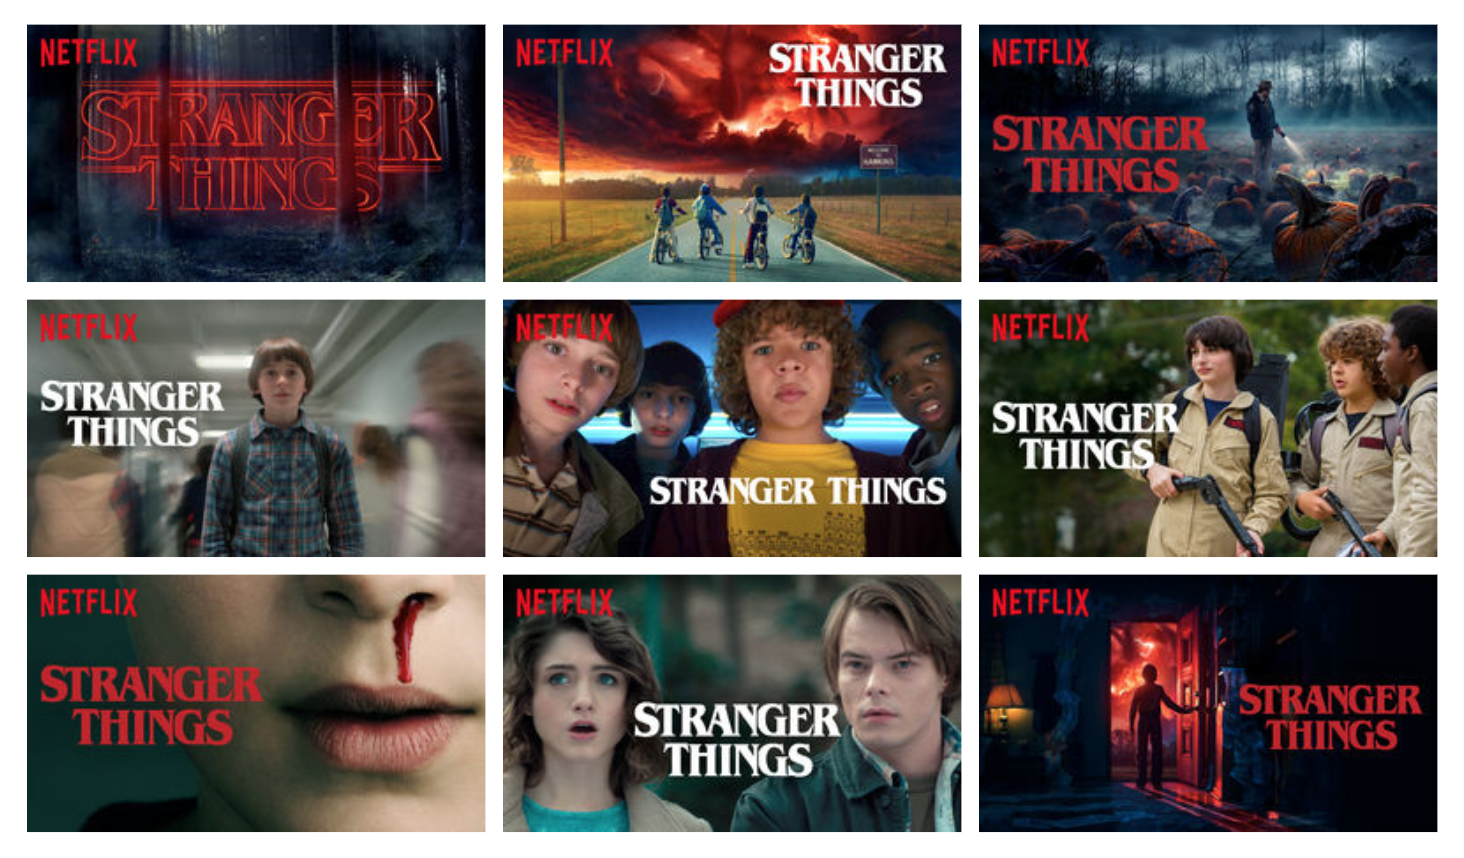 stranger-things-images